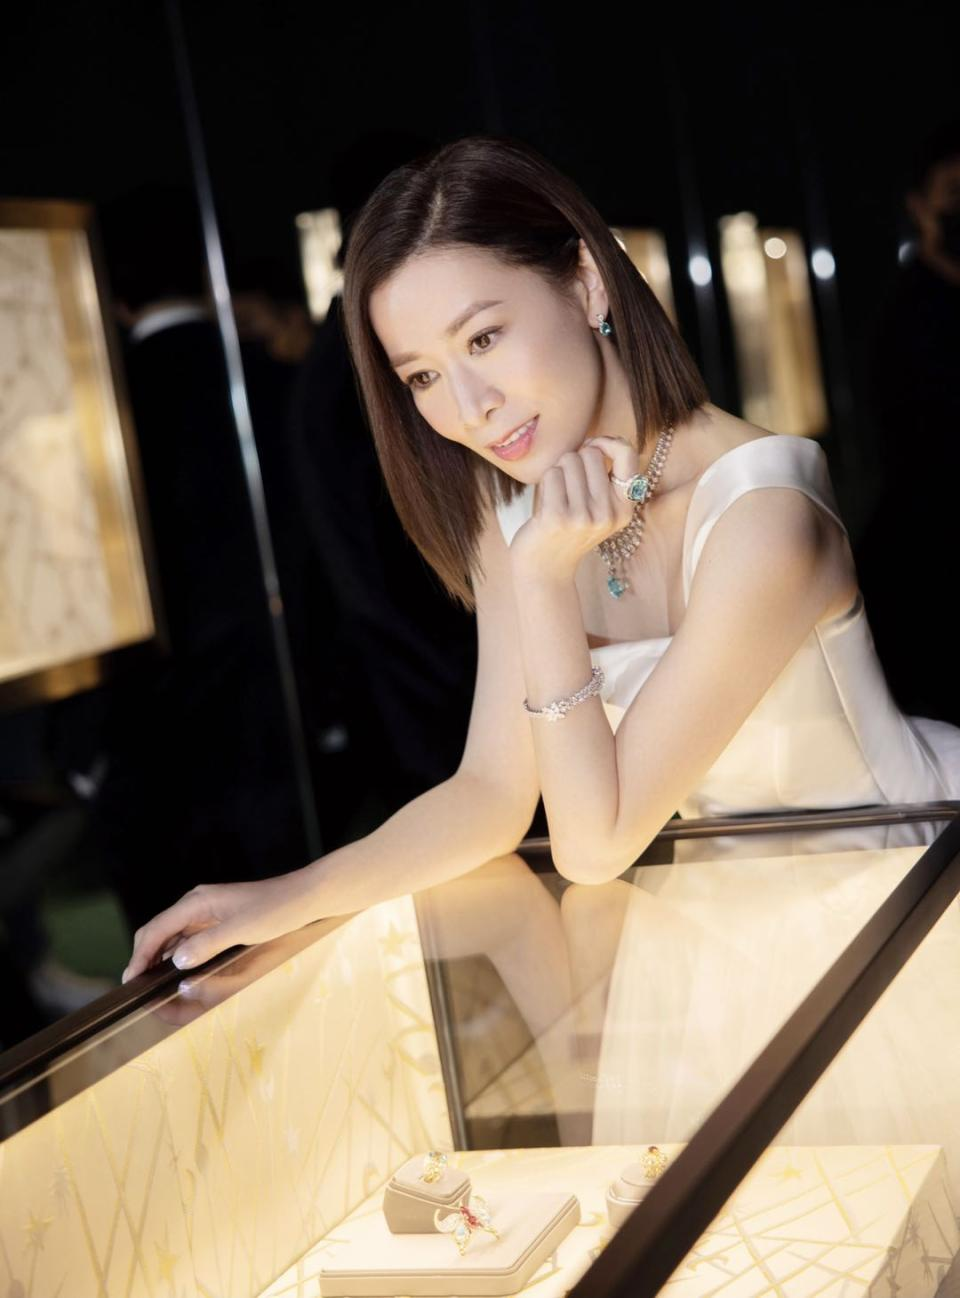 Charmaine Sheh. (PHOTO: Tiffany & Co.)